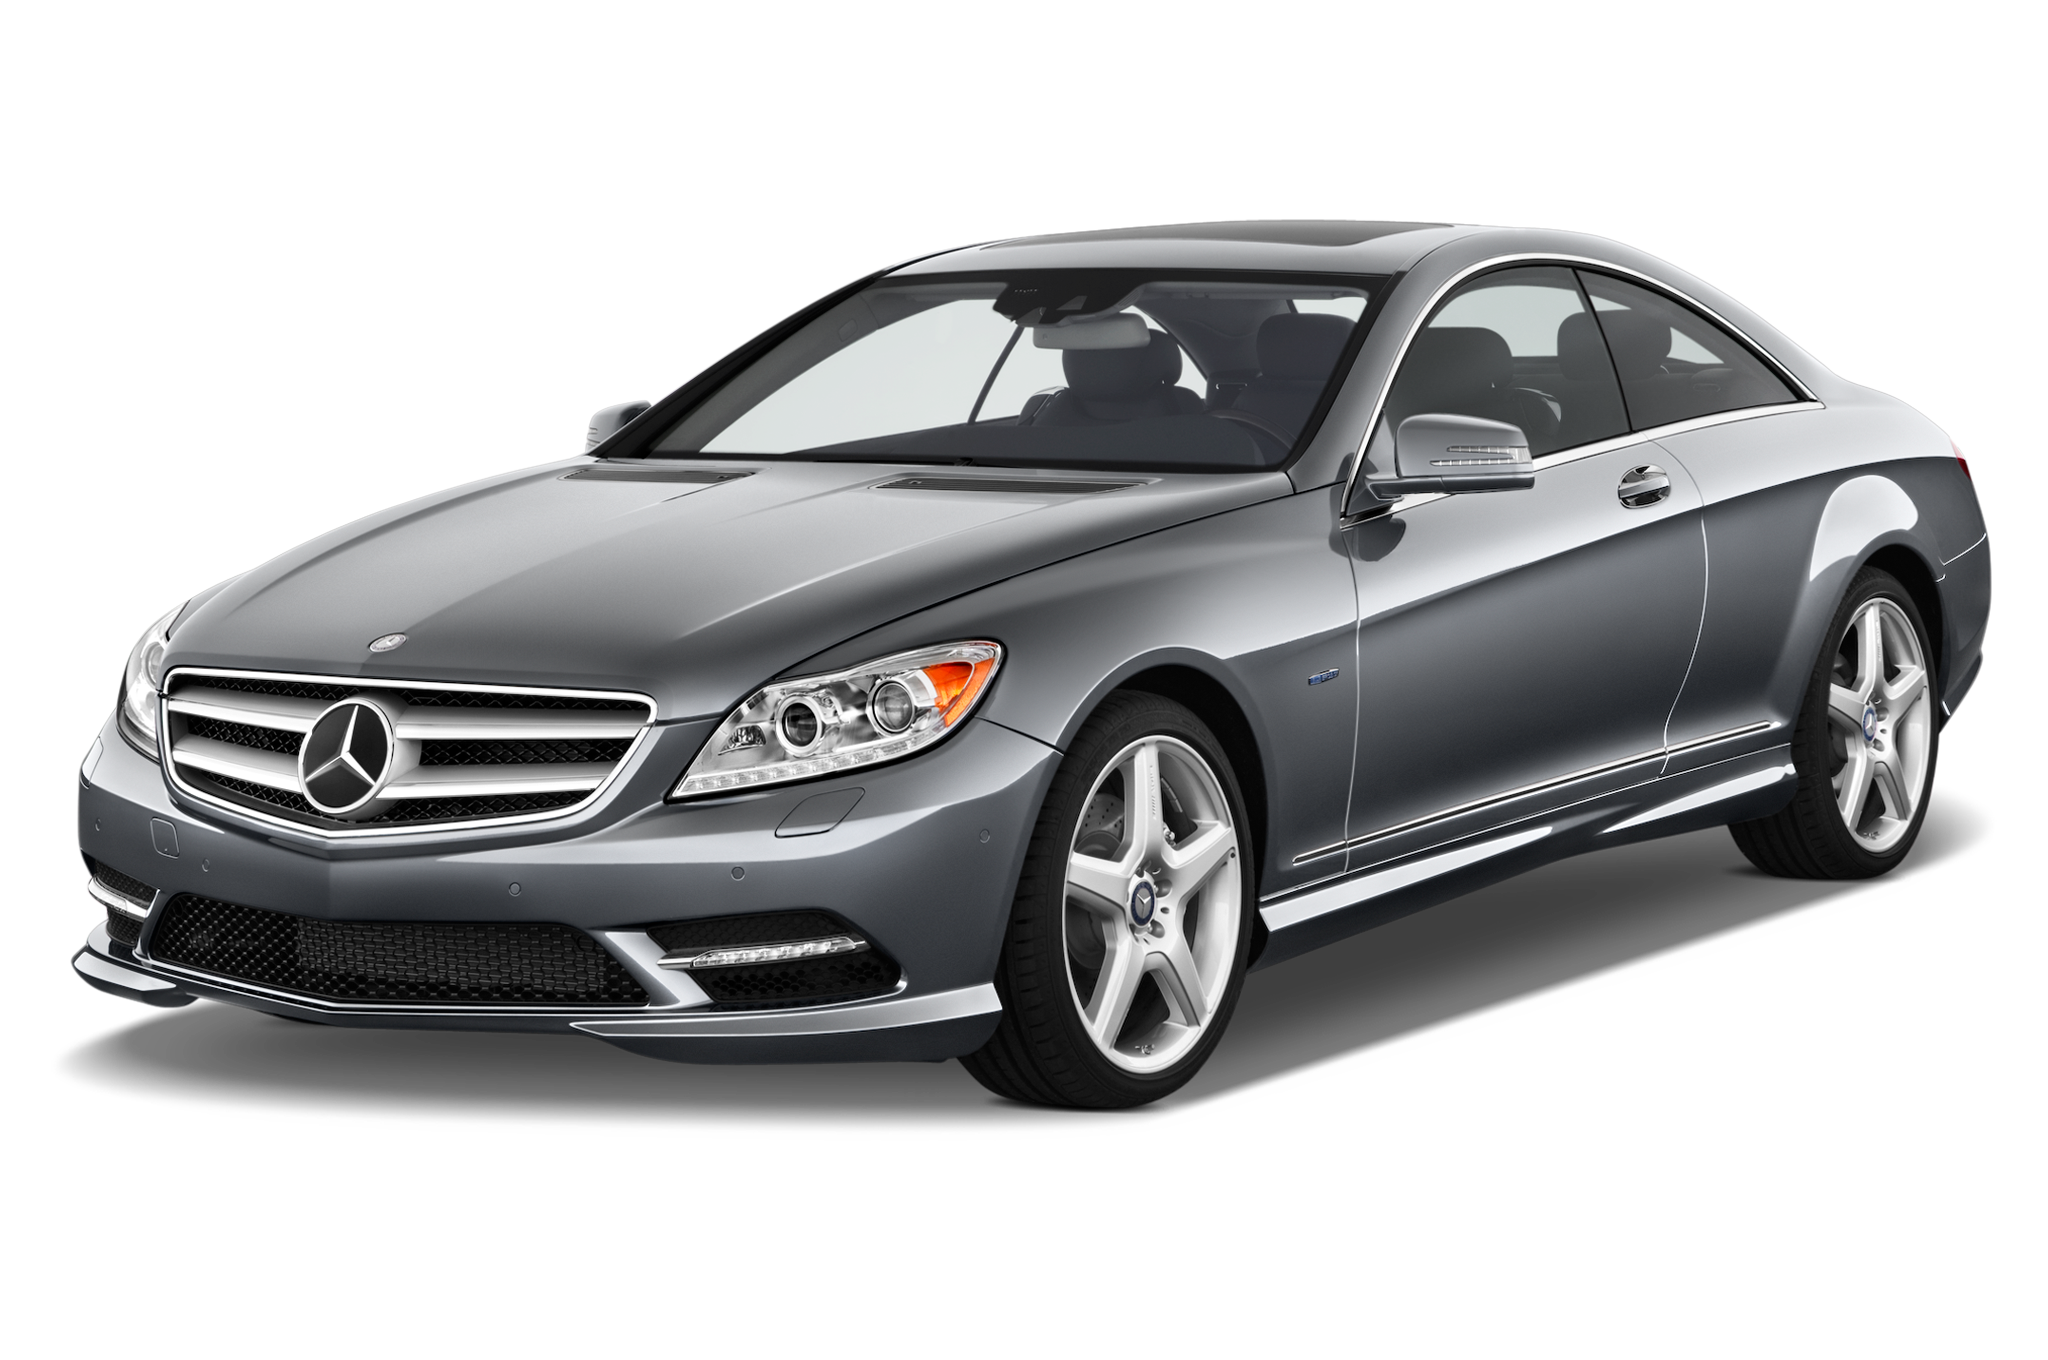 2011 mercedes benz cl550 4matic first look automobile for Mercedes benz cl550